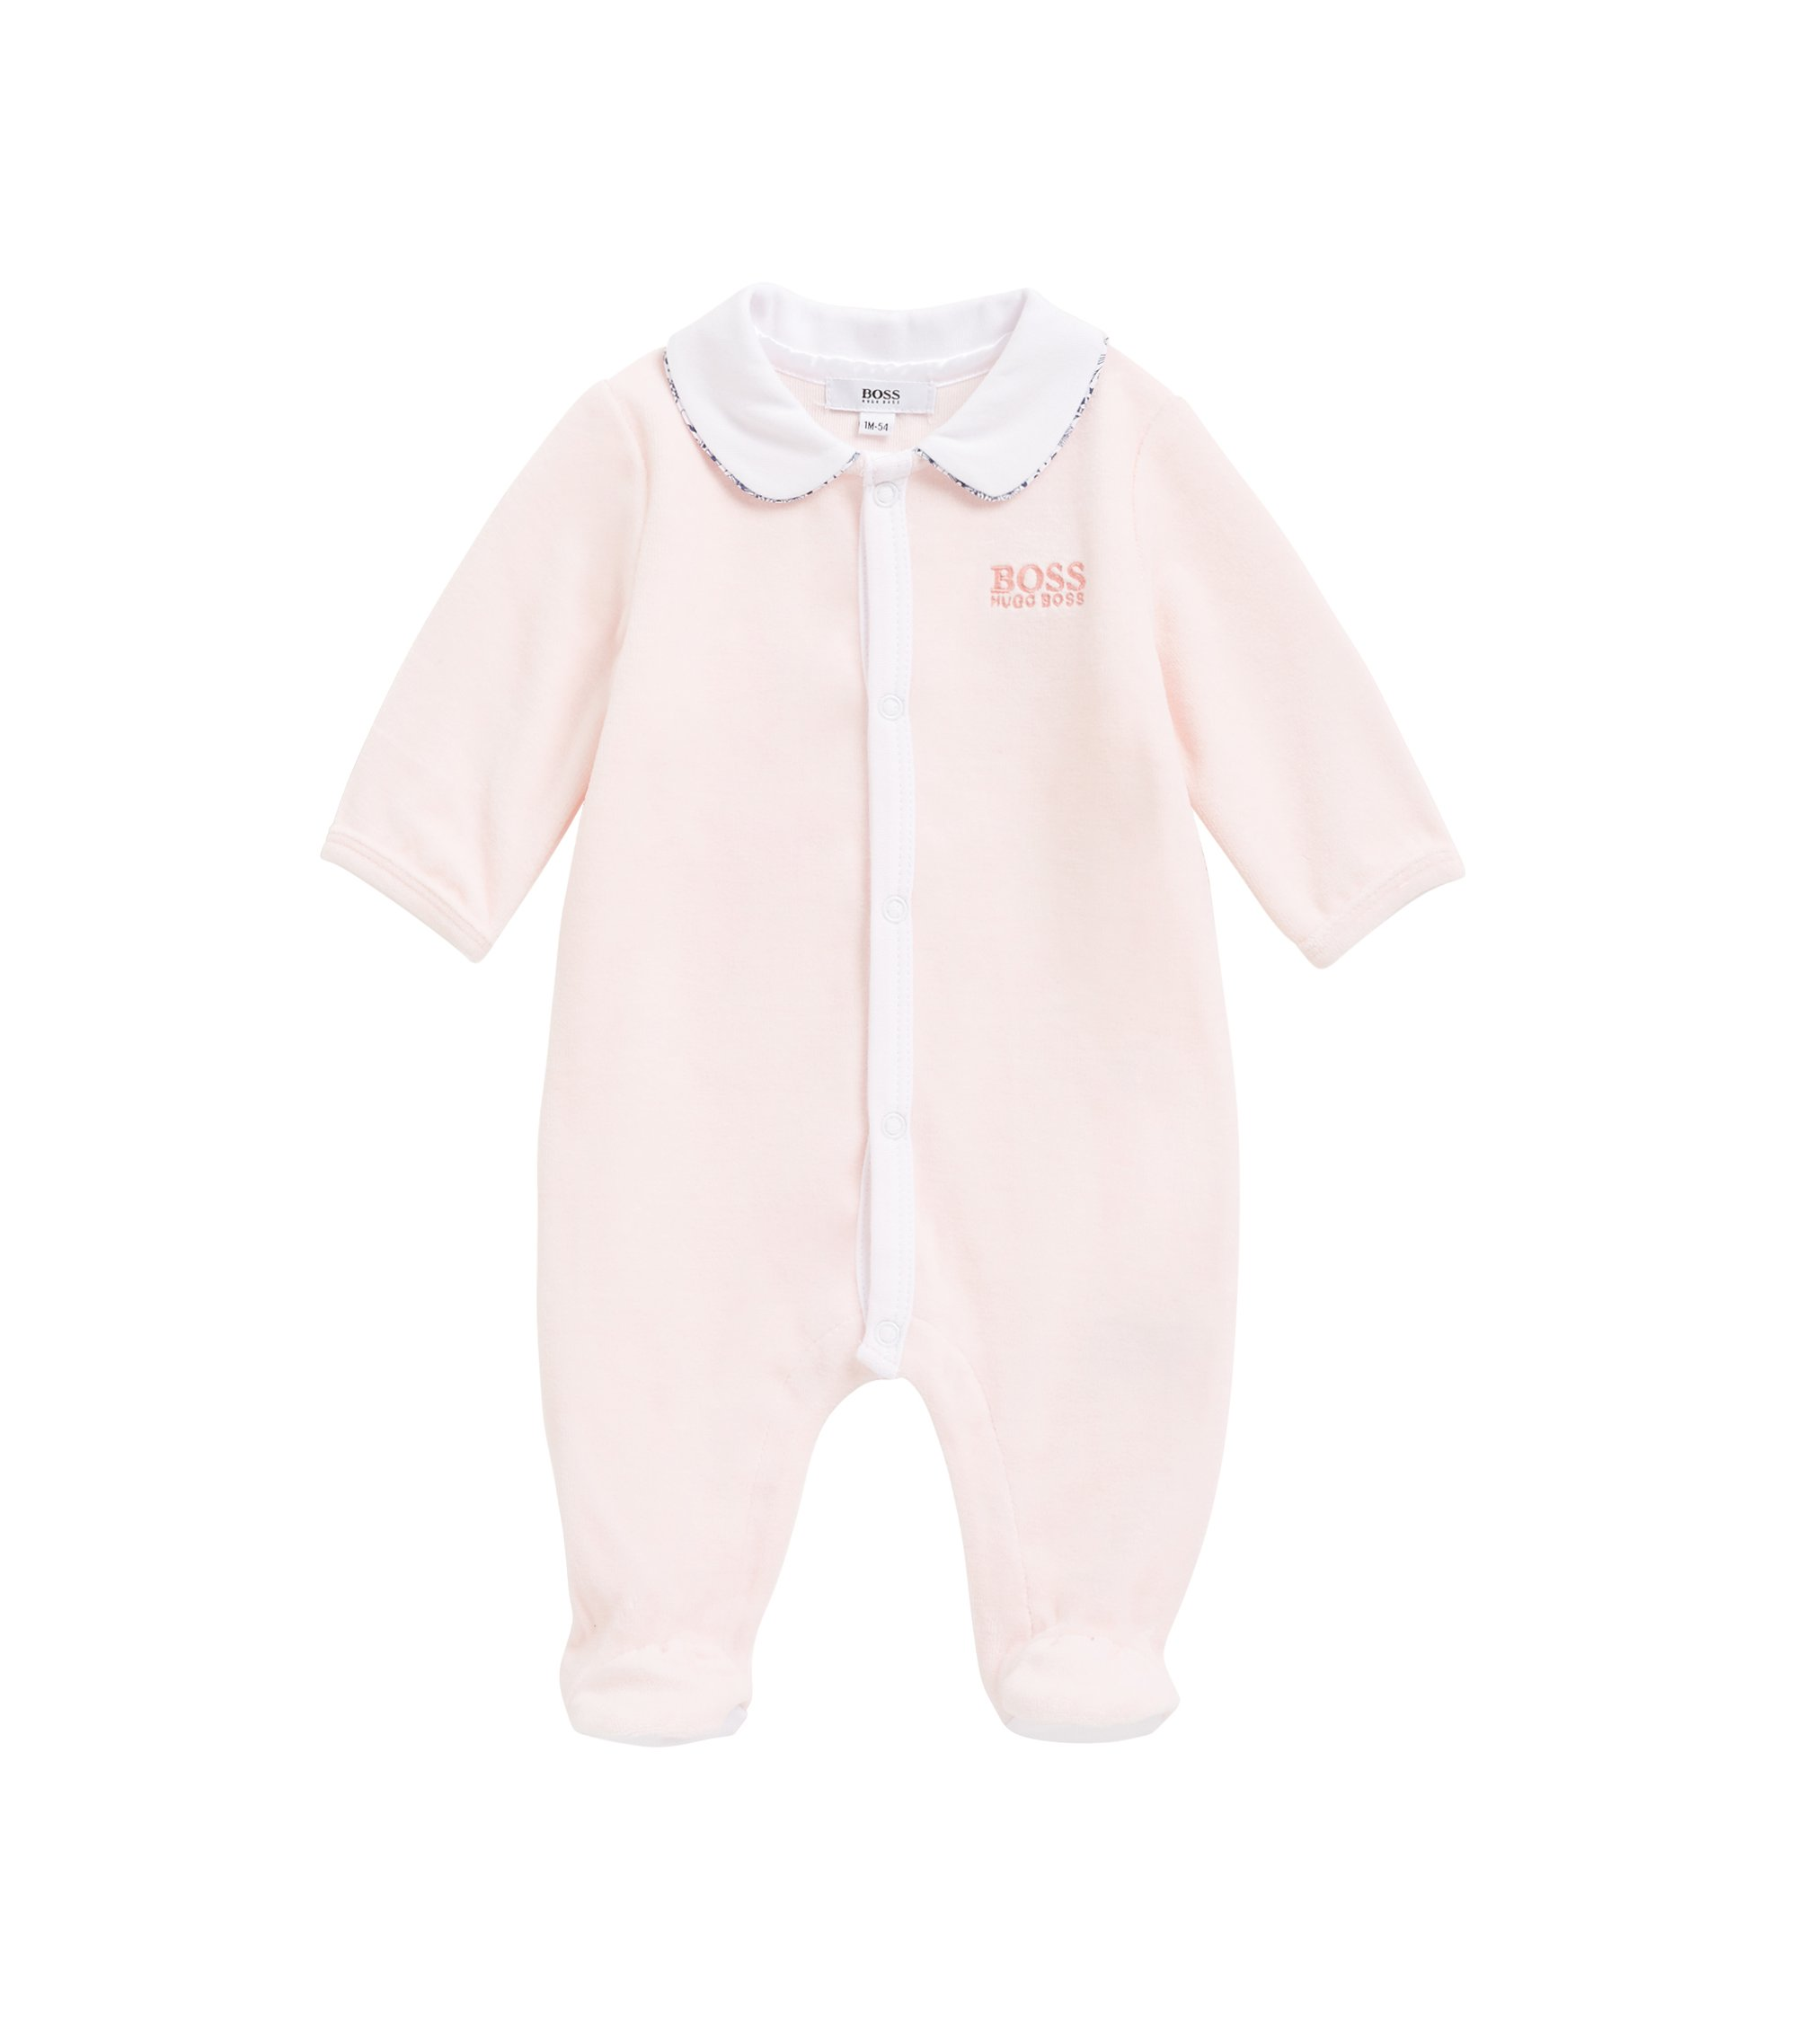 Baby girl sleepsuit in cotton-blend terry velvet, light pink